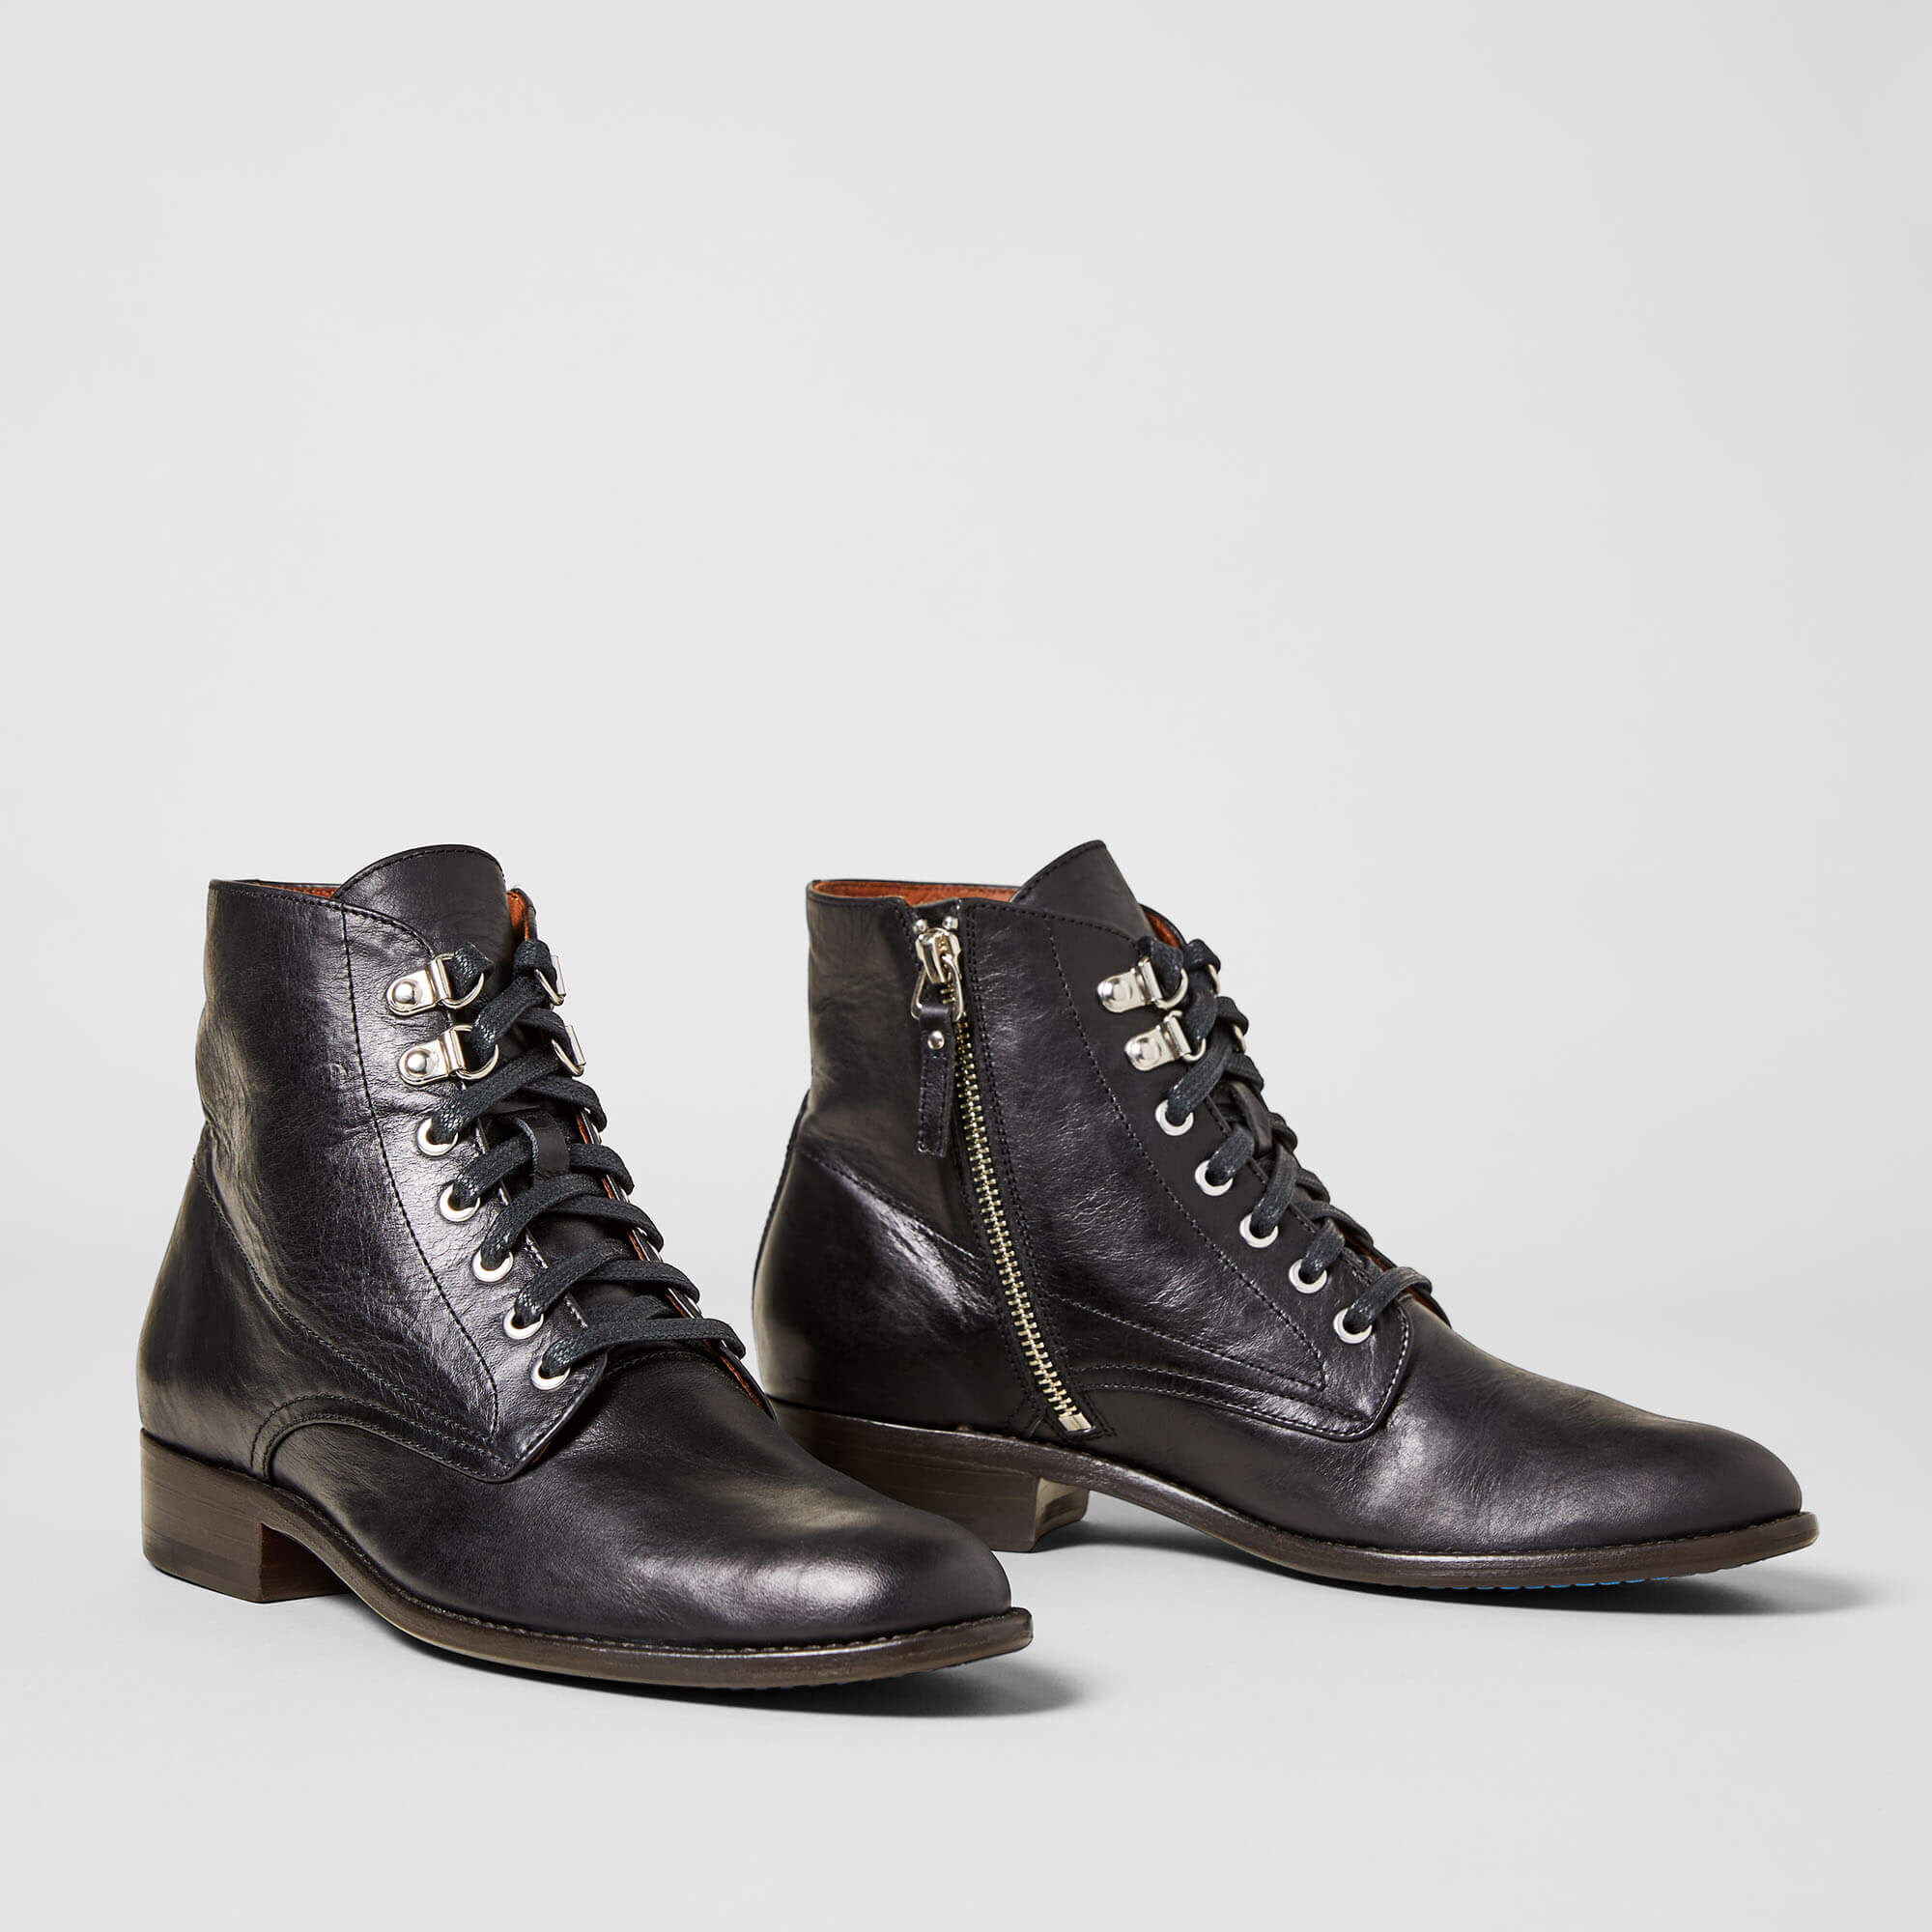 Women's Bancroft Ankle Boots in Black Leather by Ariat Two24